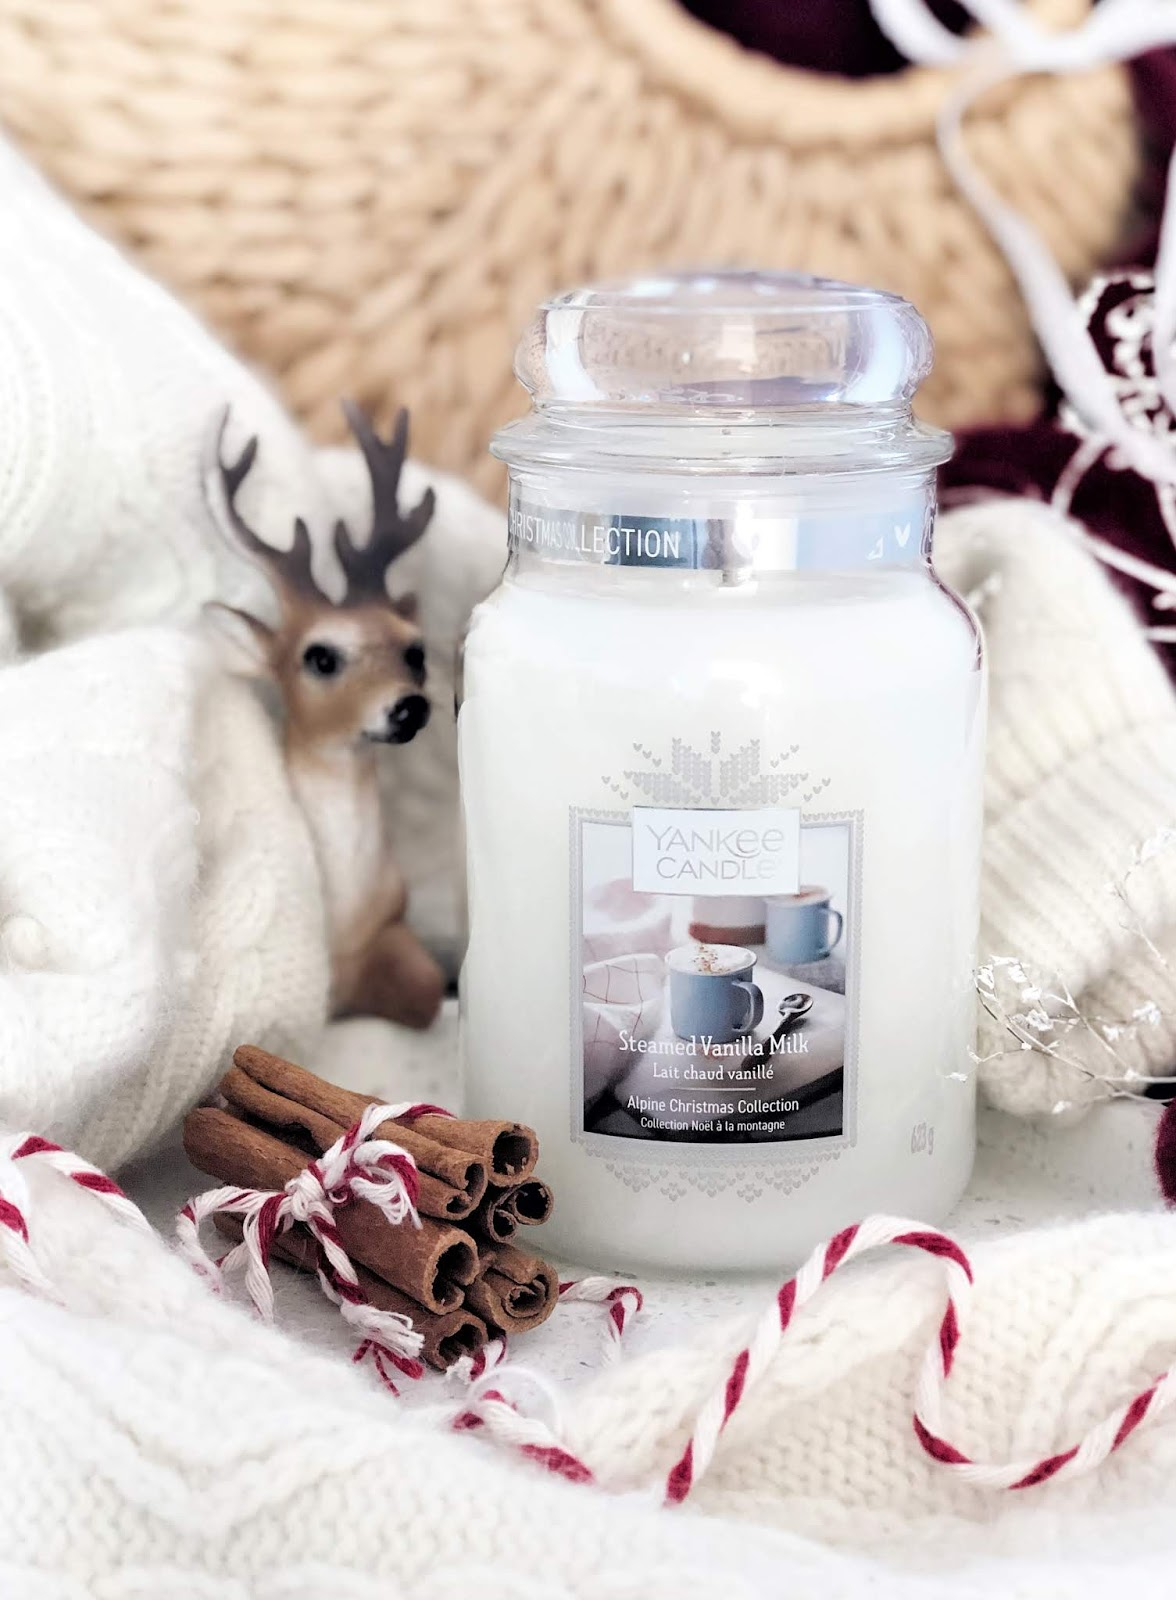 Alpine-Christmas-Yankee-Candle-Steamed-Vanilla-Milk